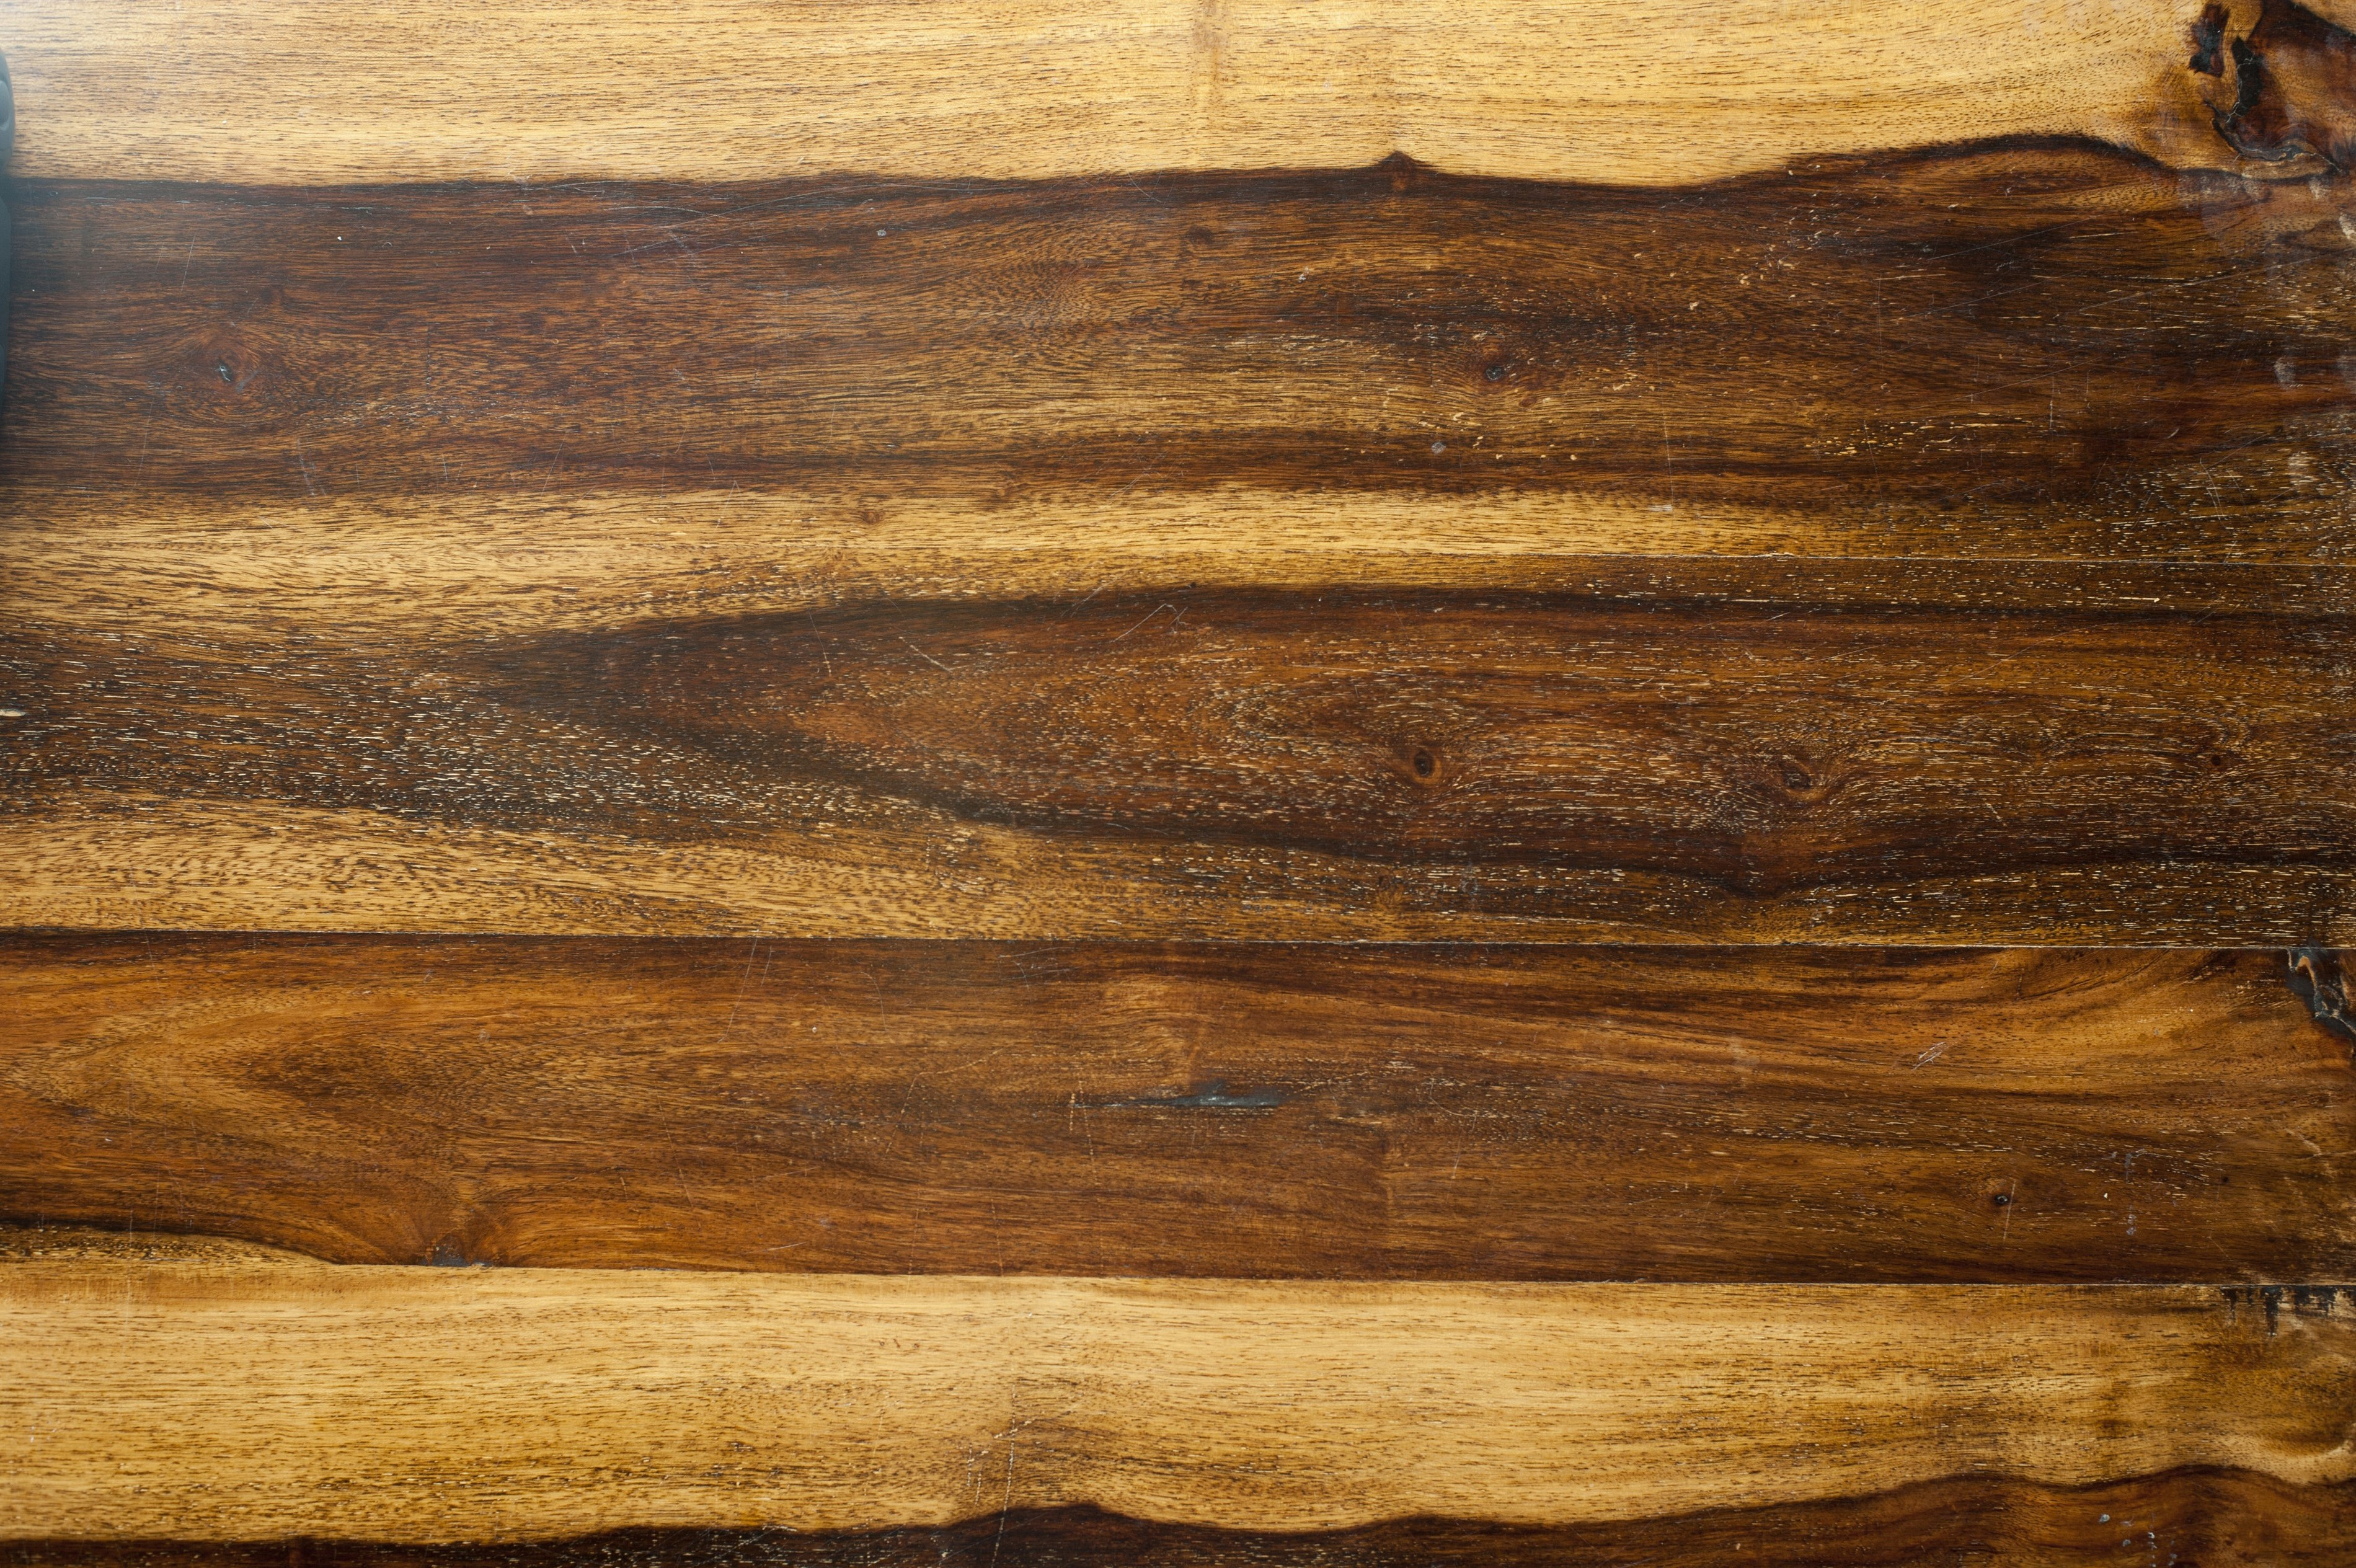 planed dark and light wood grain background